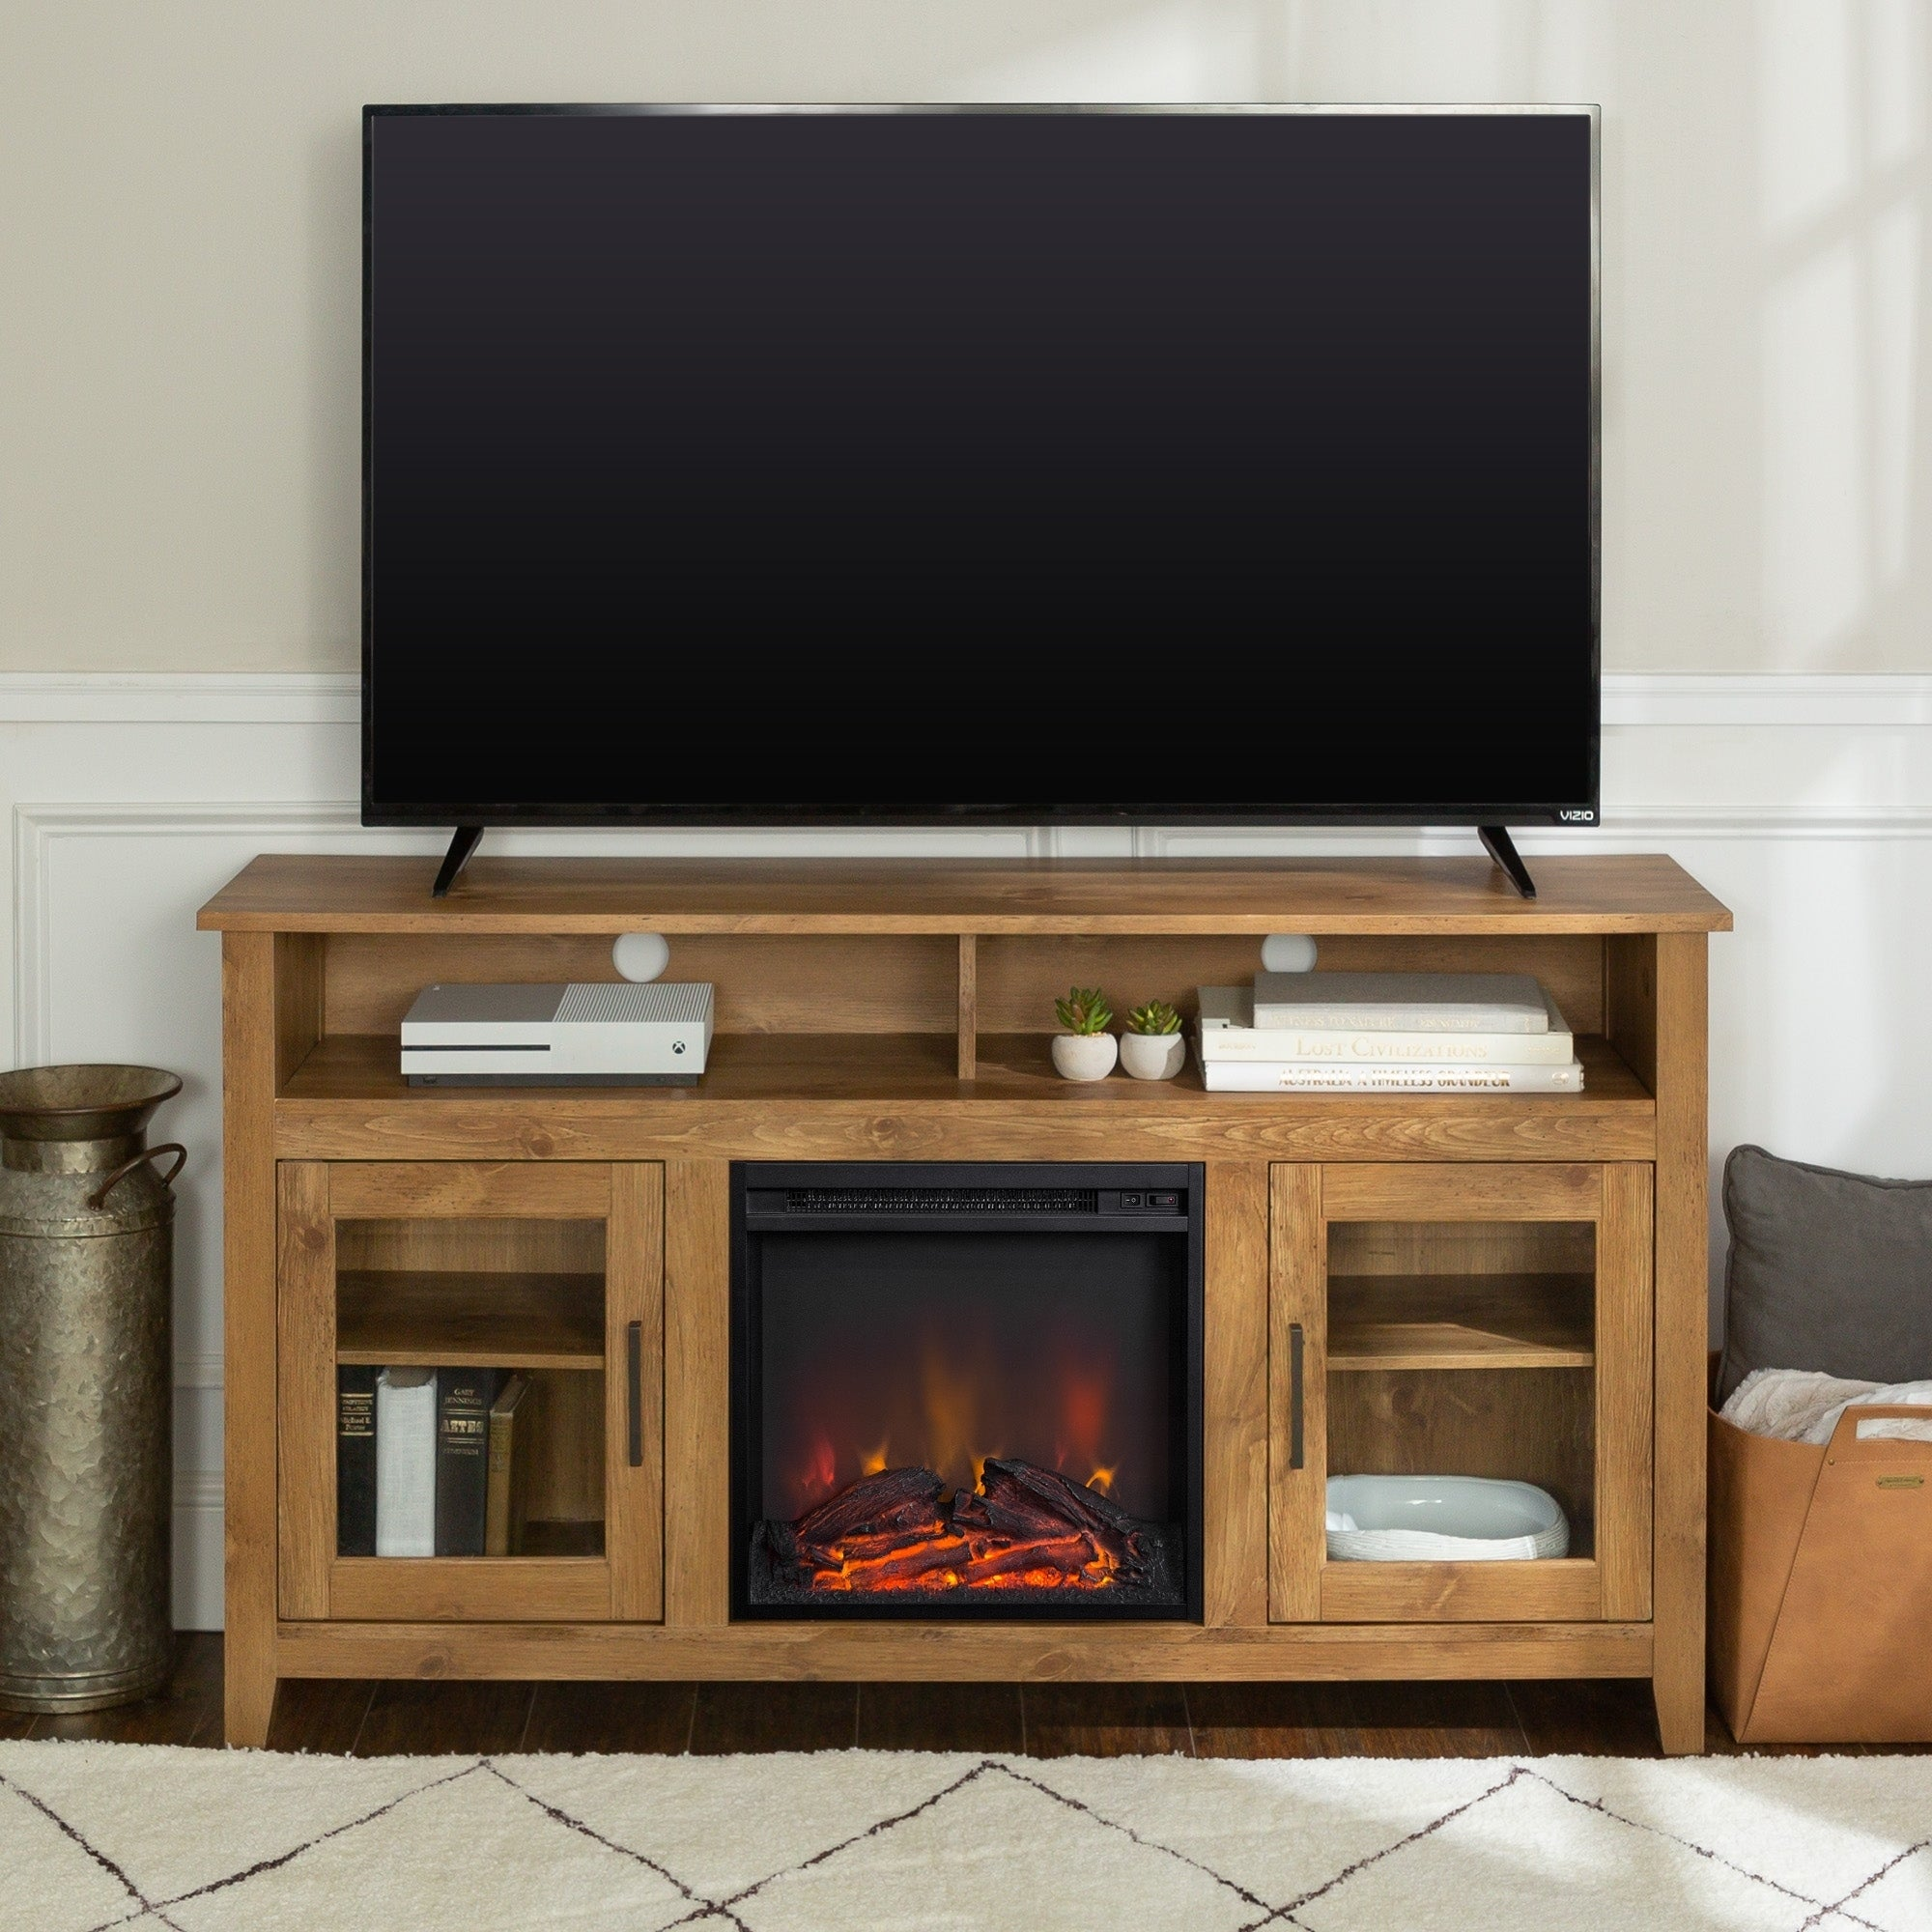 01dca72ceb3 Buy Fireplace TV Stand Fireplaces Online at Overstock